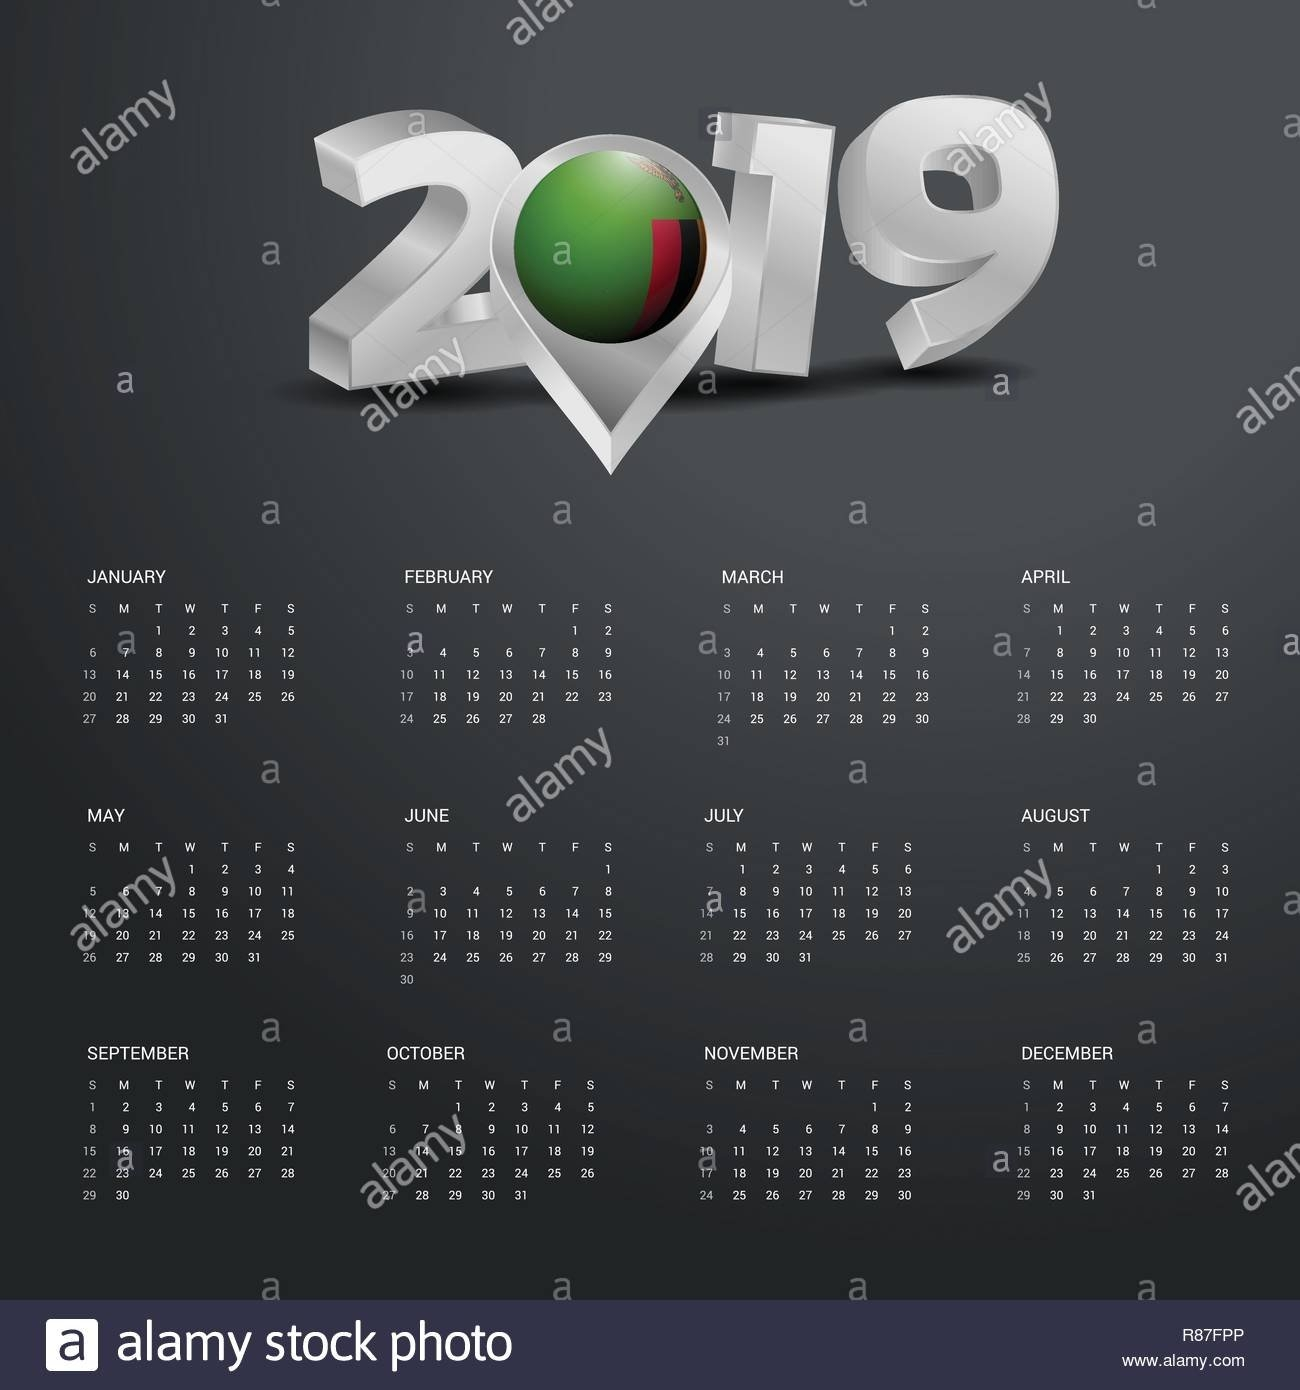 2019 Calendar Template. Grey Typography With Zambia Country Map Calendar 2019 Zambia